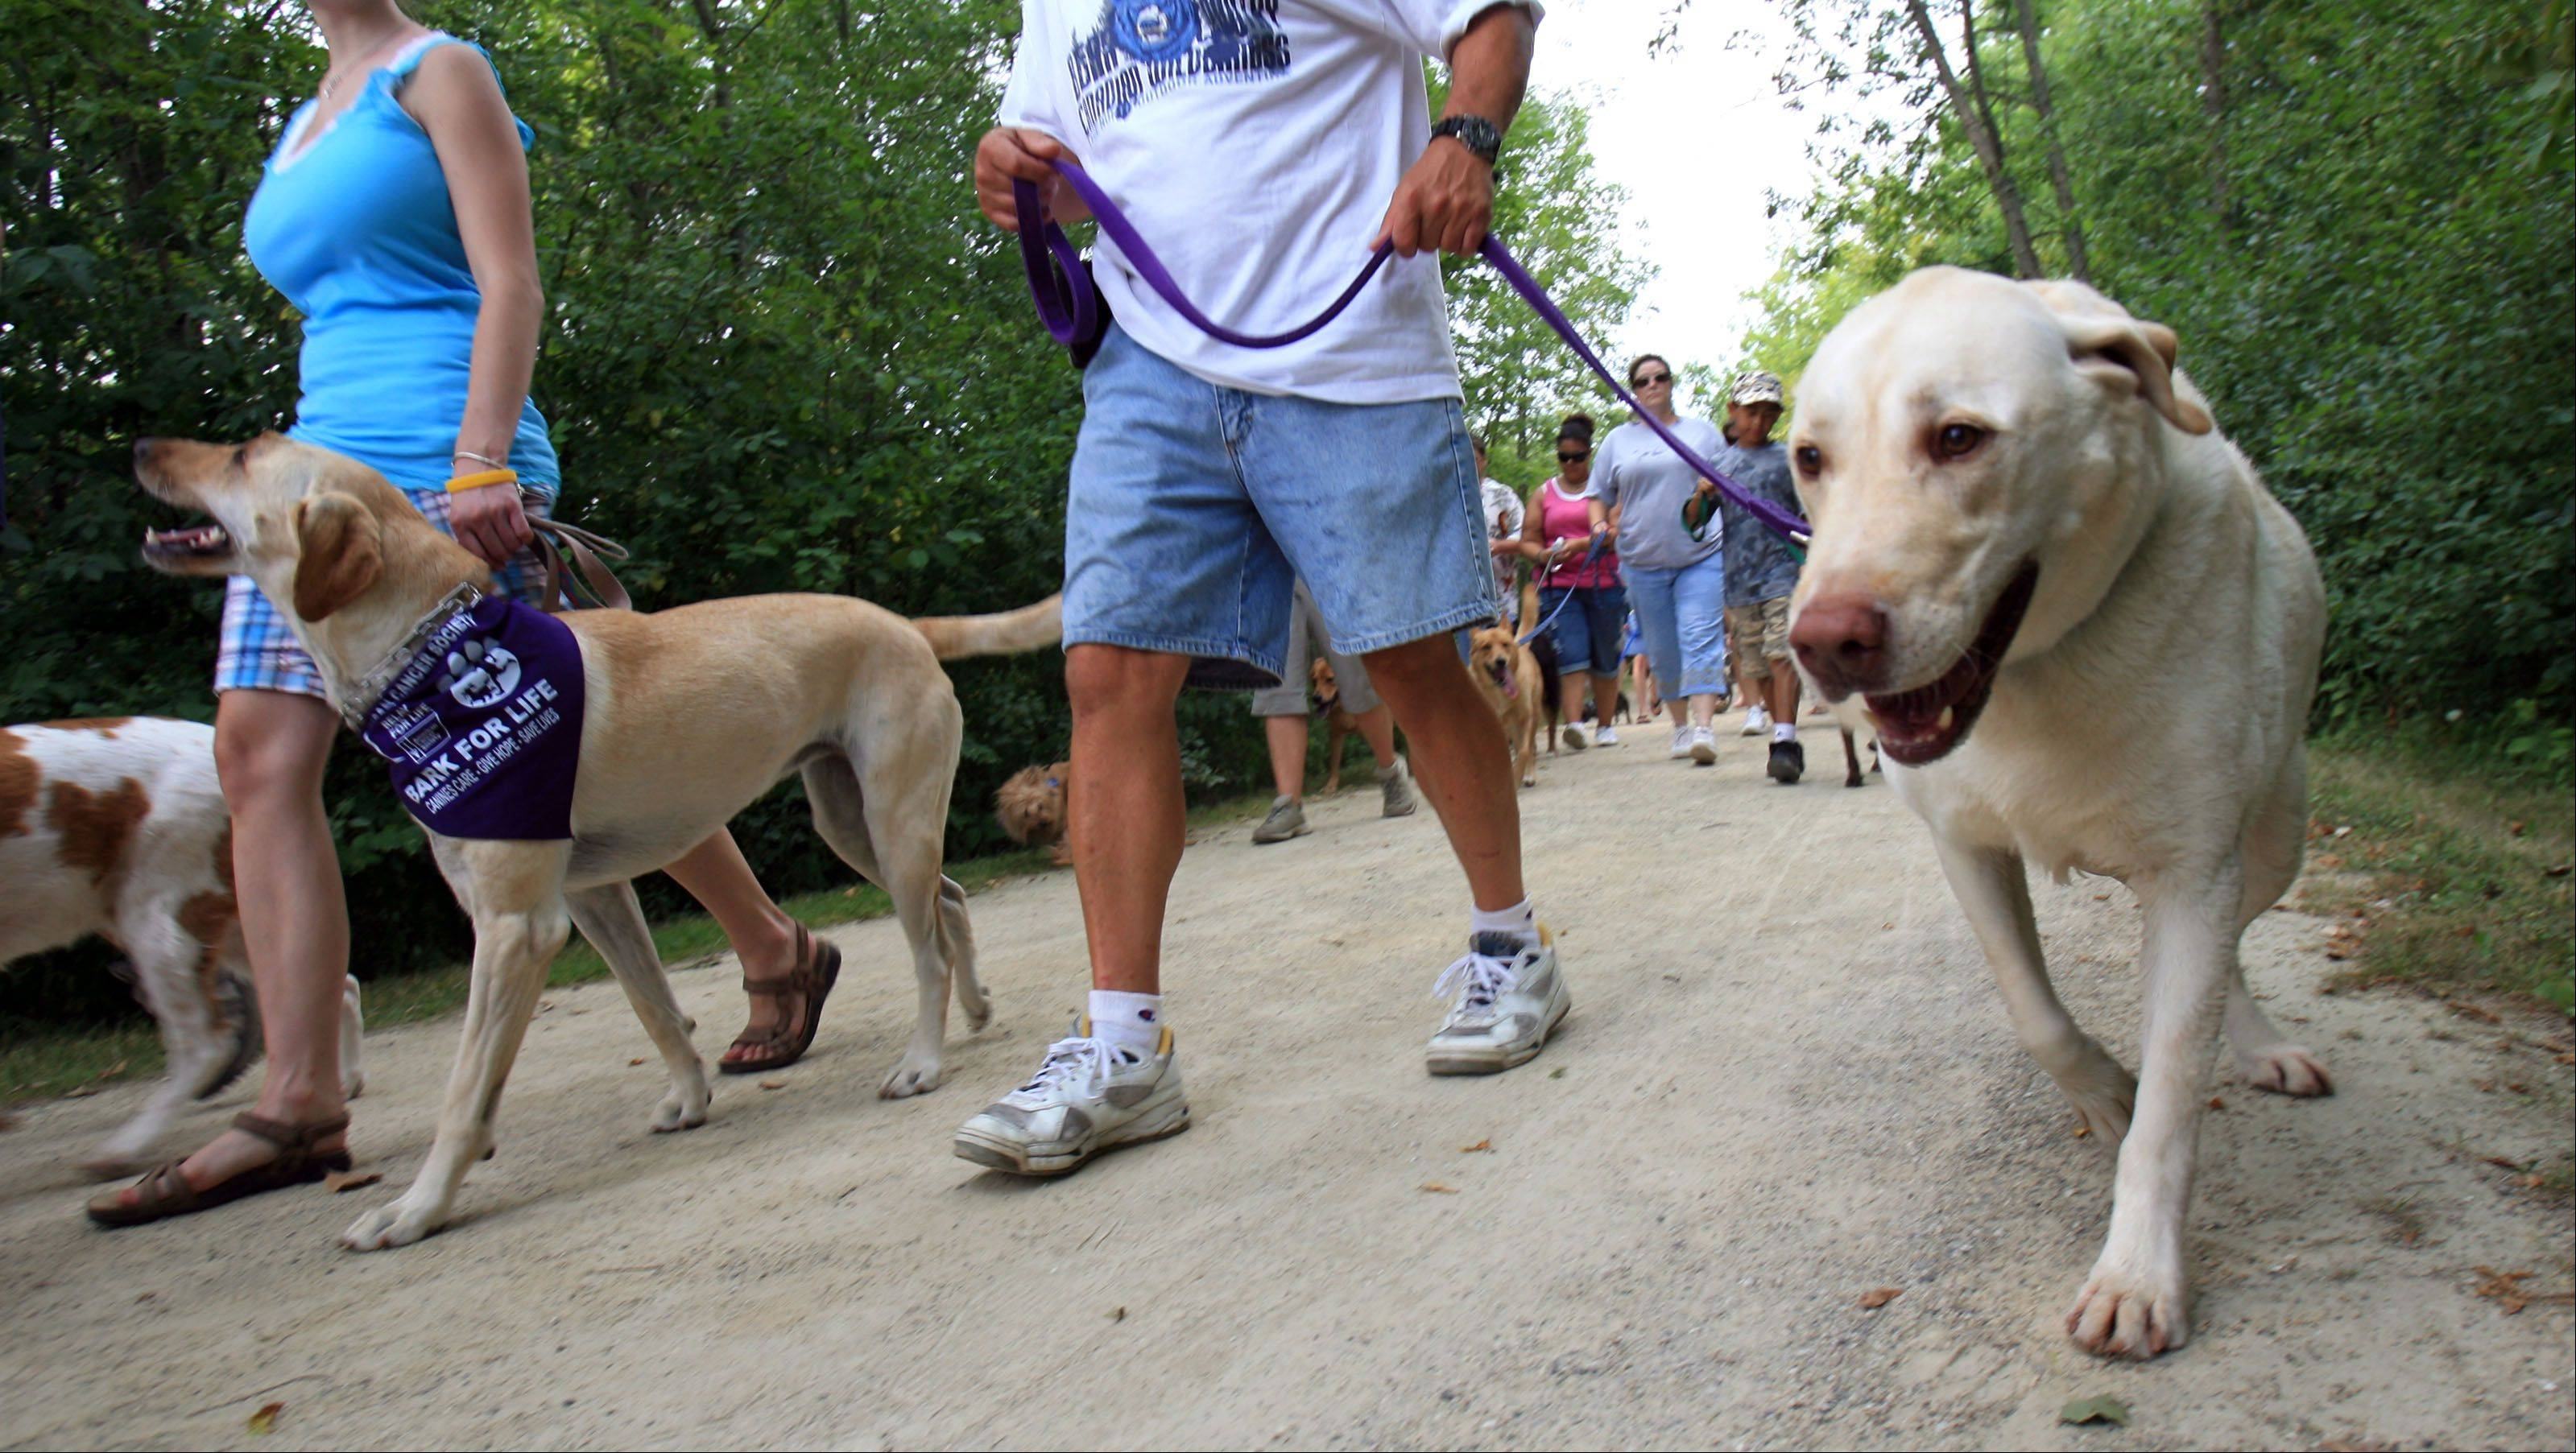 Bark for Life supporters will hit the trail for a 1-mile walk Sunday to raise money for cancer research.